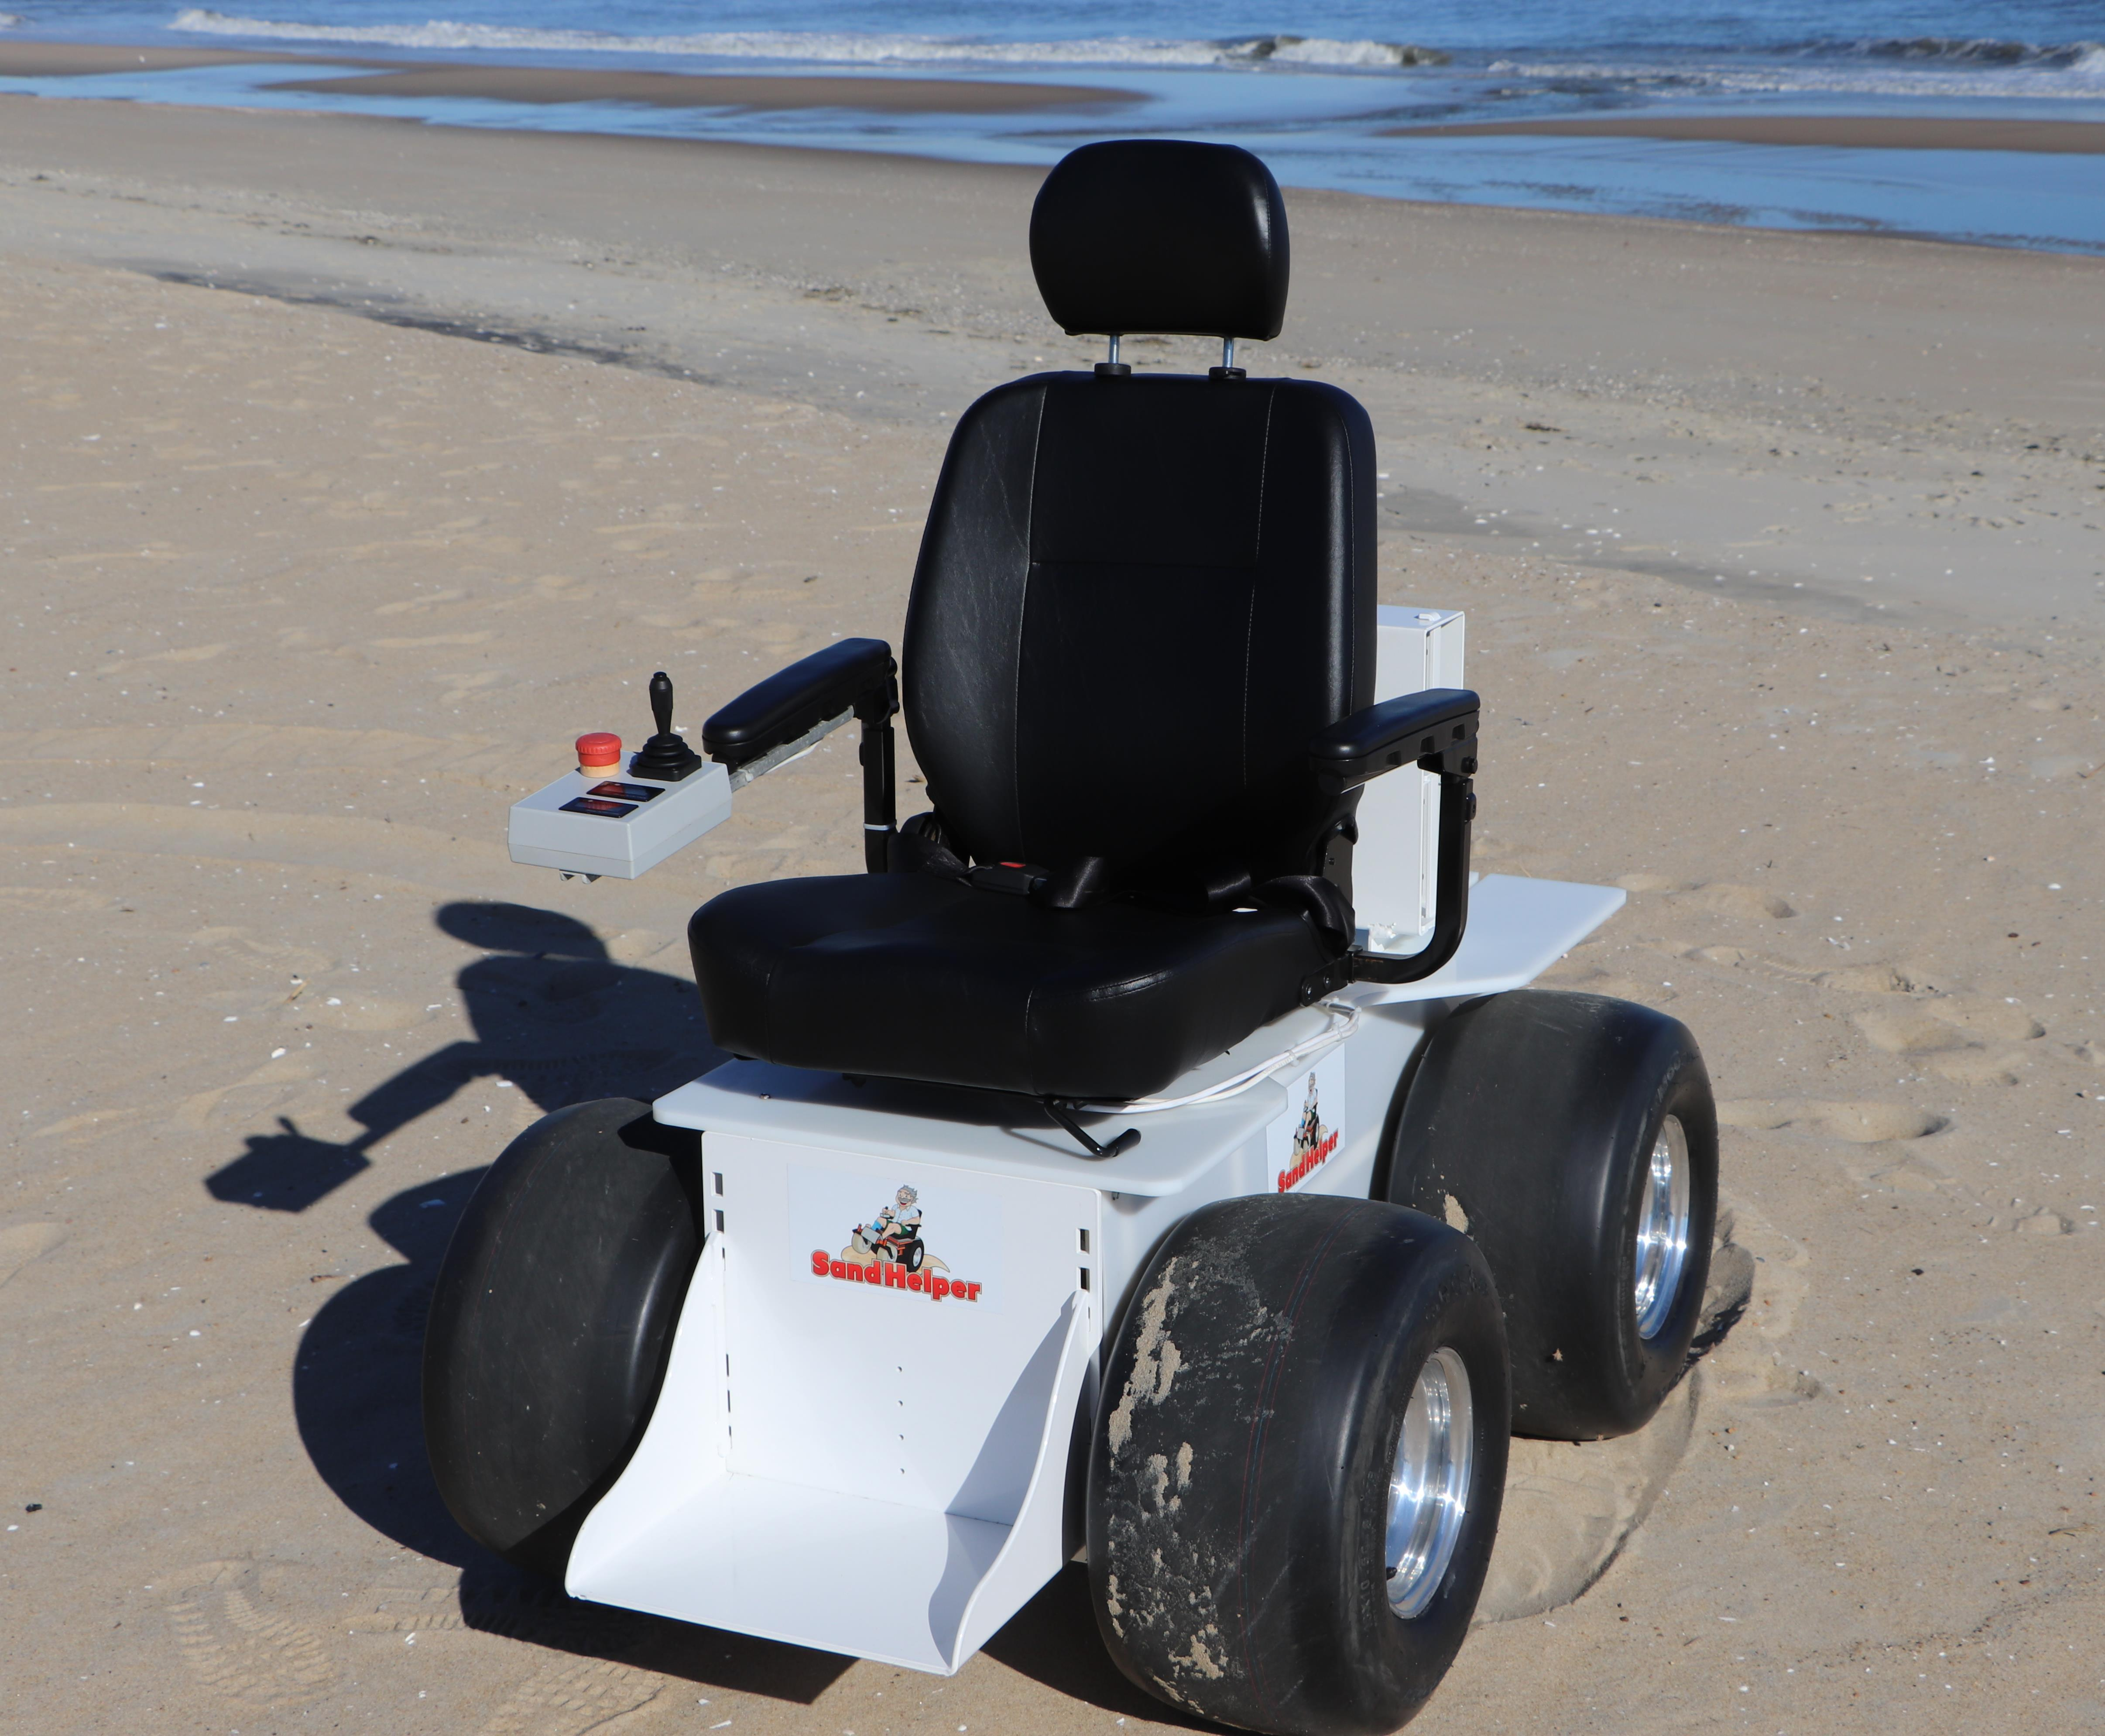 Sand Helper Motorized Beach Wheel Chair